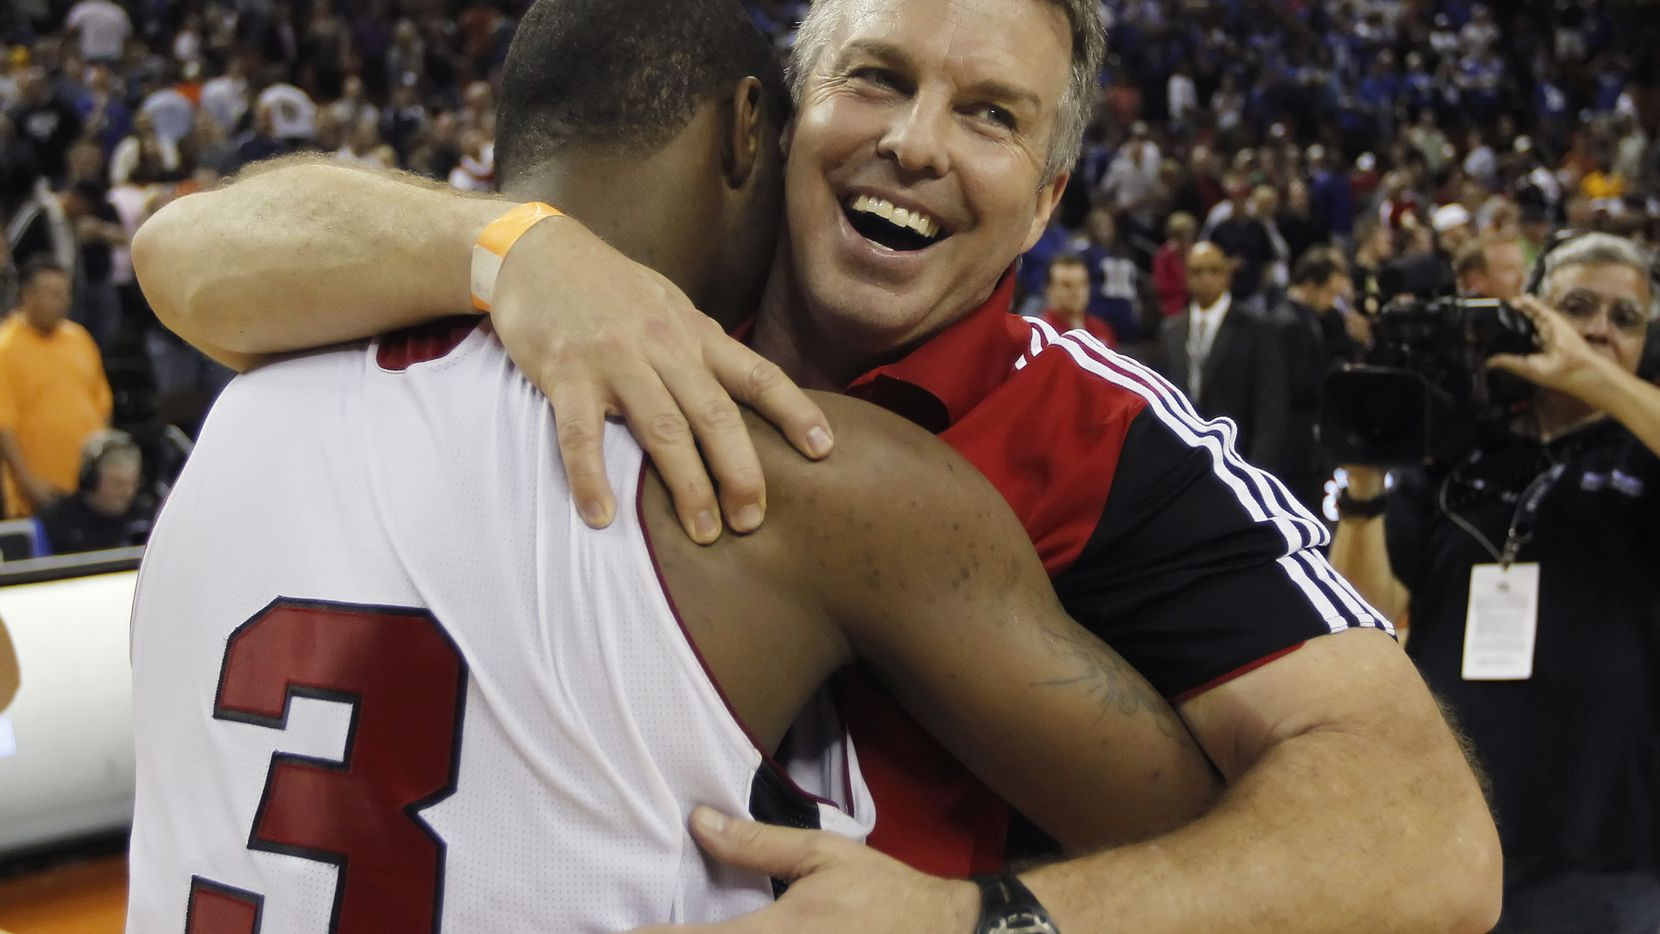 Flower Mound Marcus coach Danny Henderson hugs Marcus Smart (3) after beating Garland Lakeview 40-38 in the Class 5A state championship game in 2011. Smart was named the game's MVP.